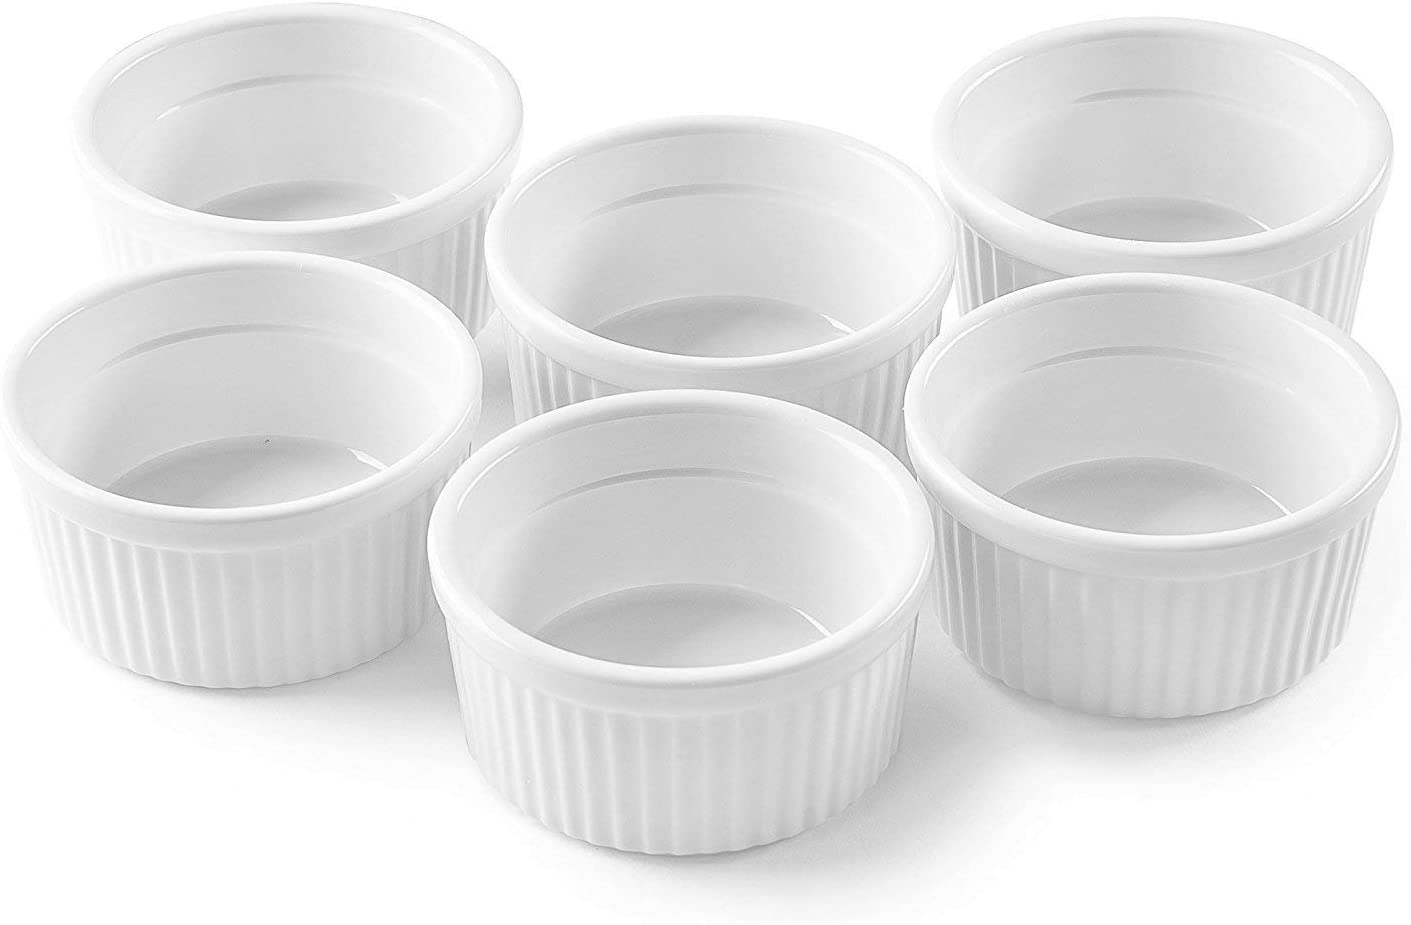 Bellemain Porcelain Ramekins, set of 6 (10 oz.)